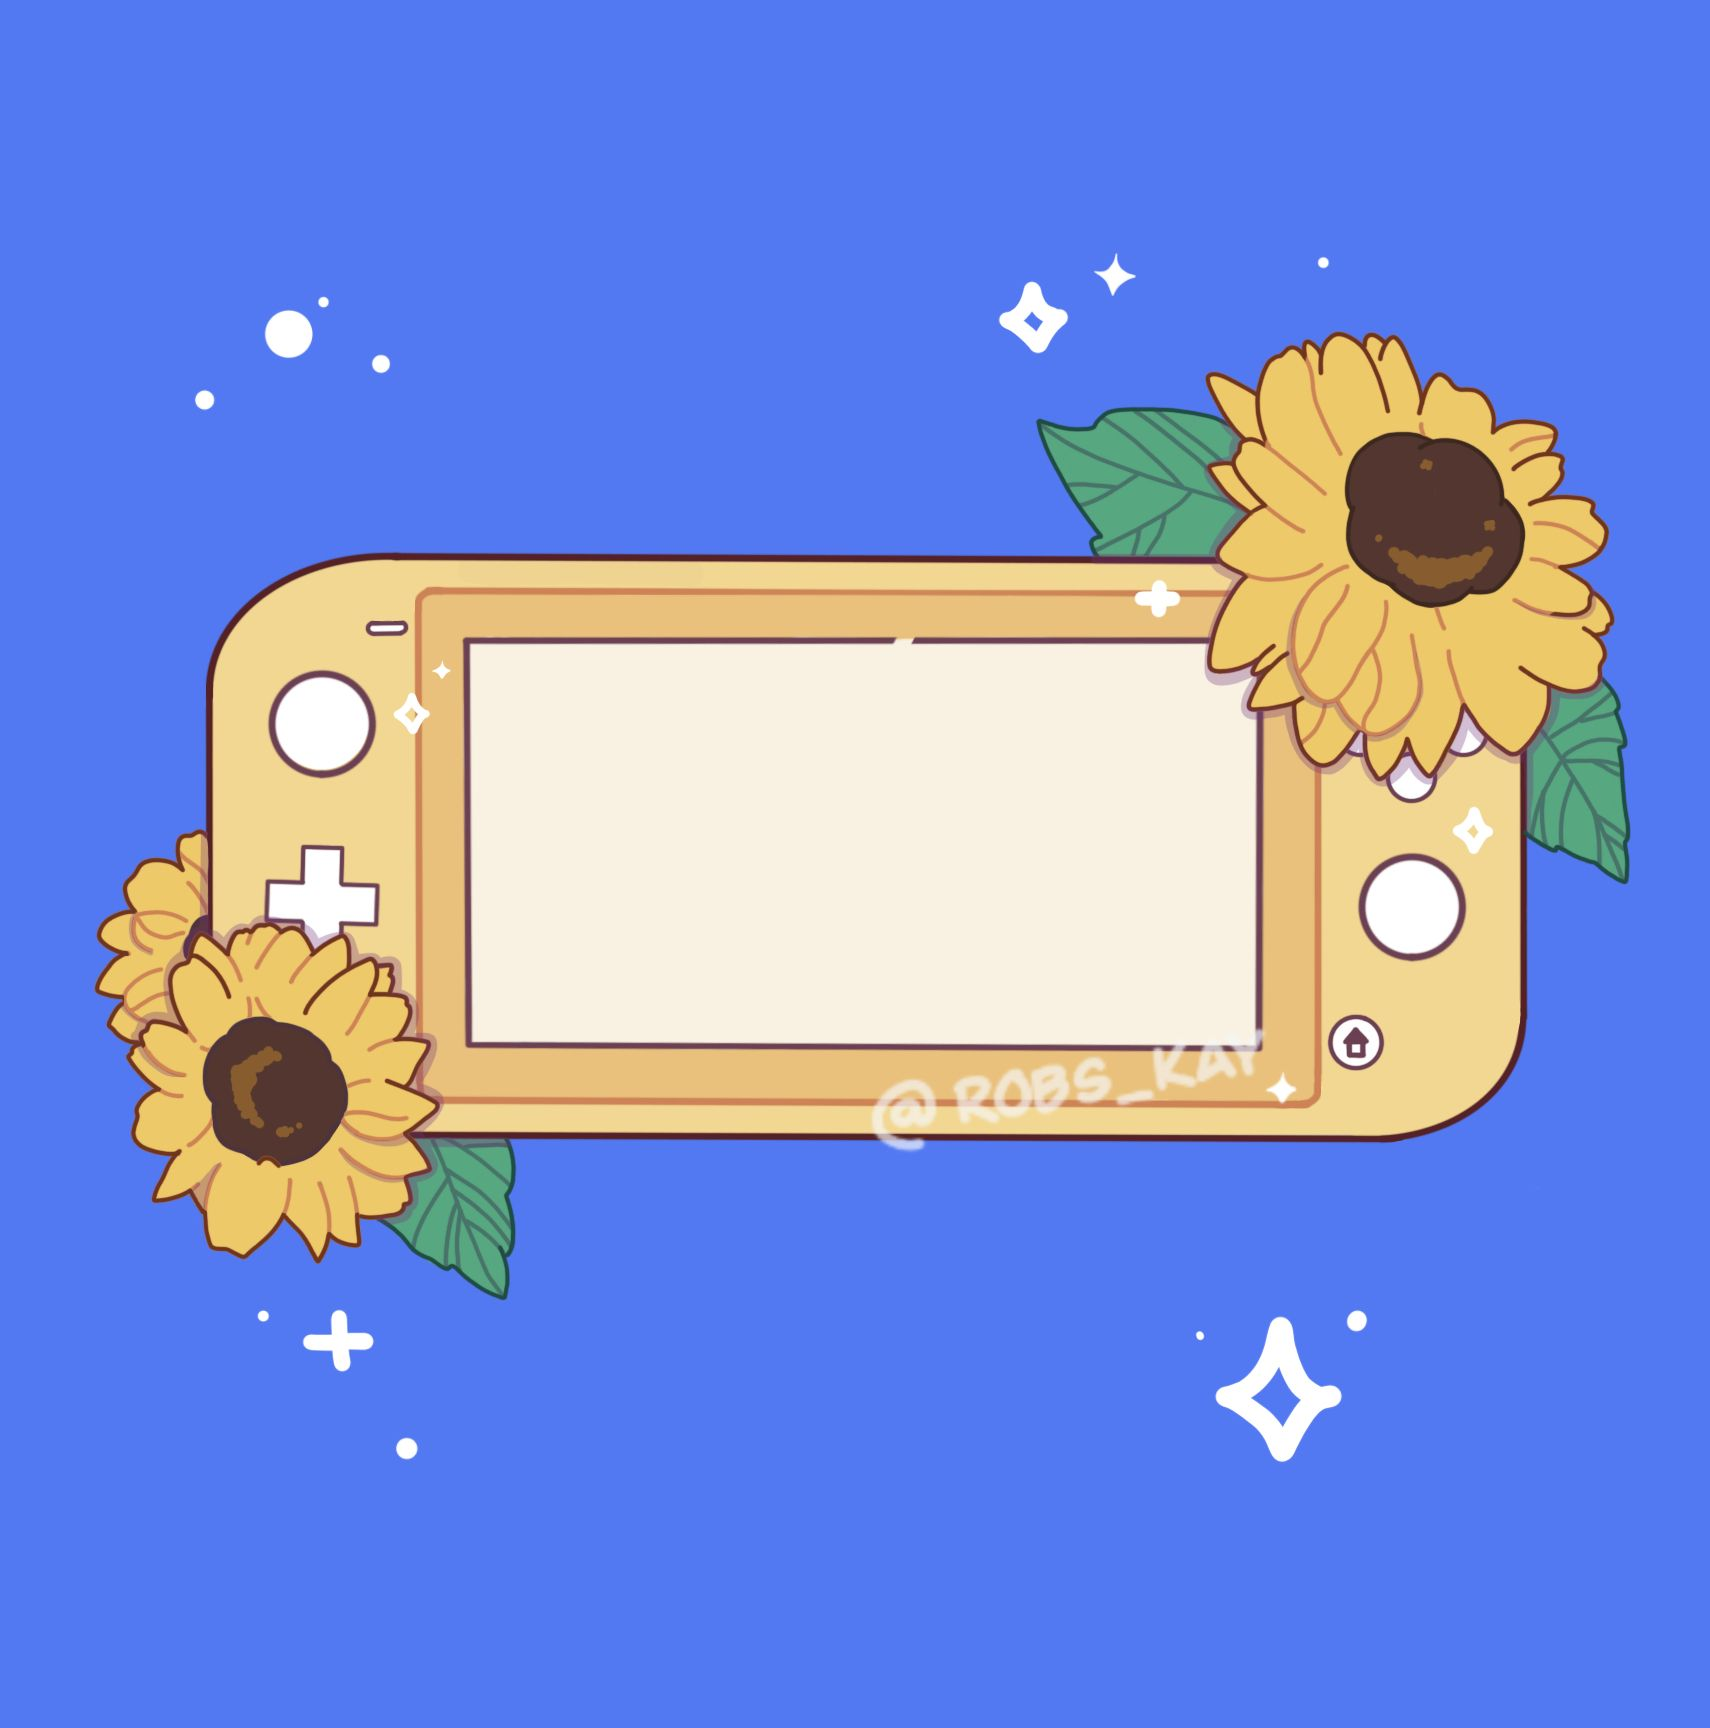 Sunflower Nintendo switch Lite (With images) Anime